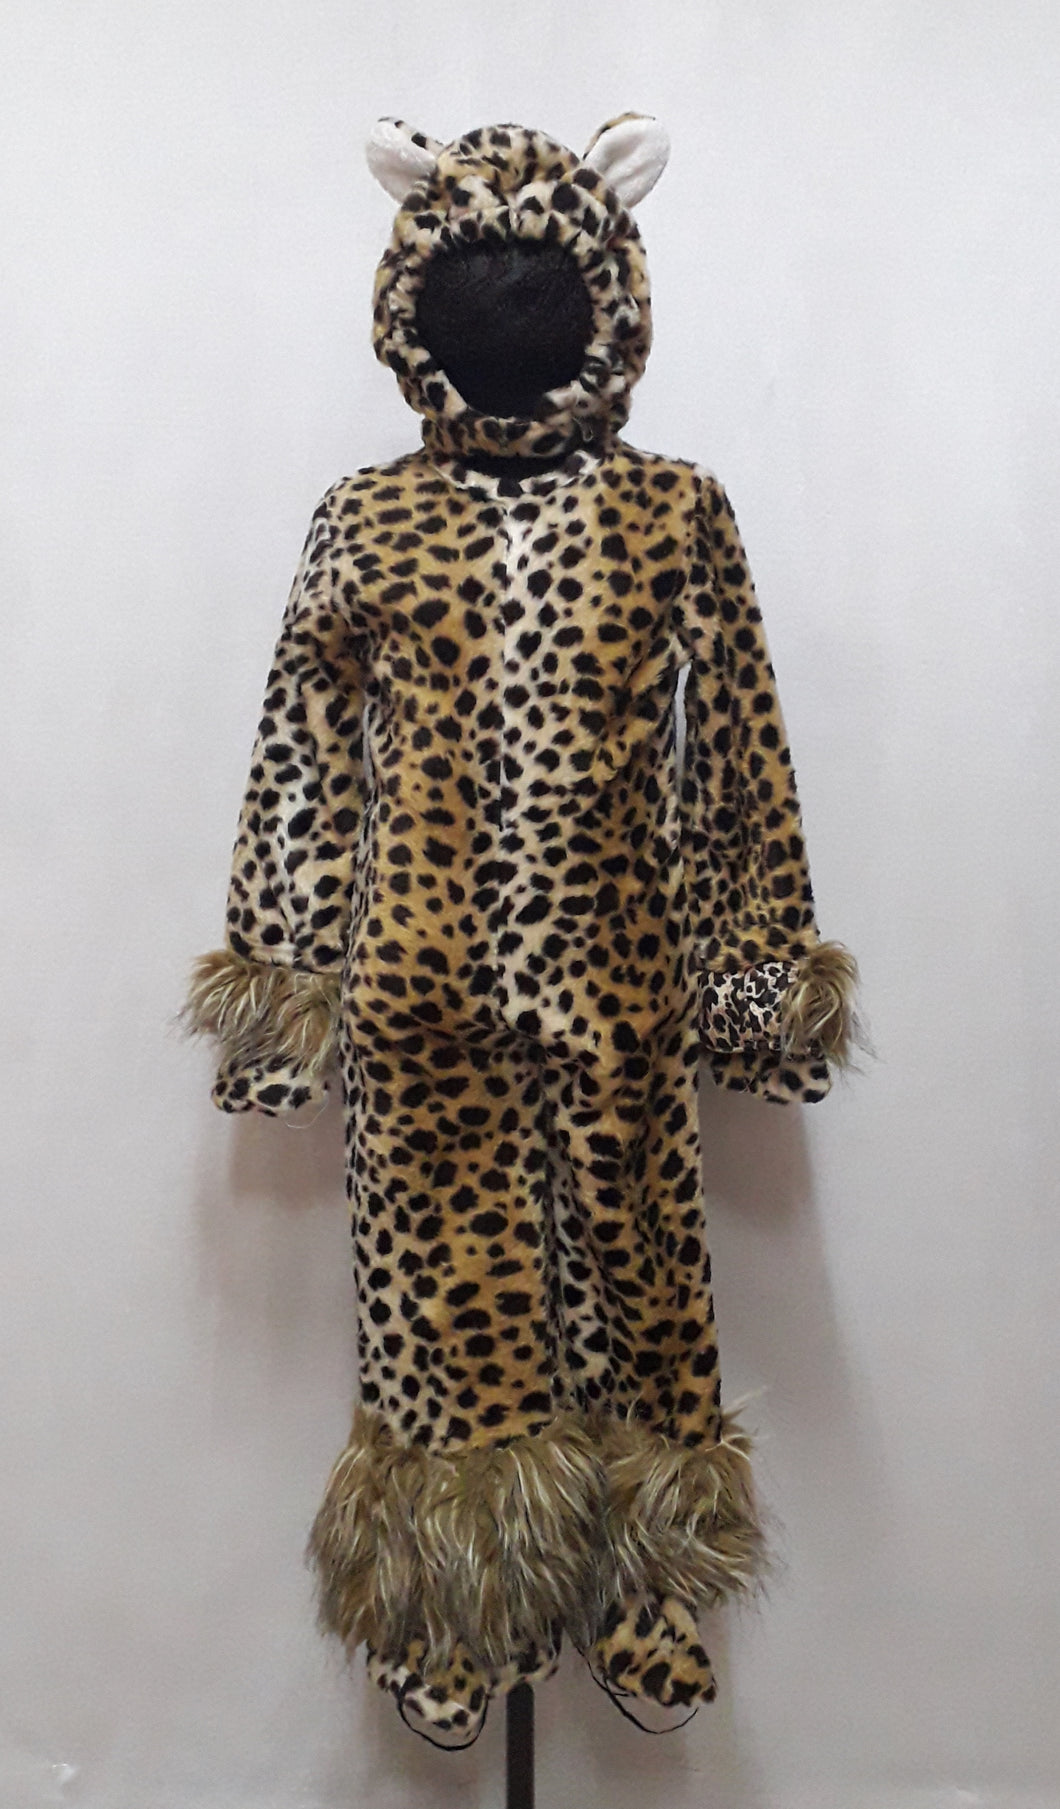 Leopard Cheetah Animal Safari Costume for Kids (5-6yo)